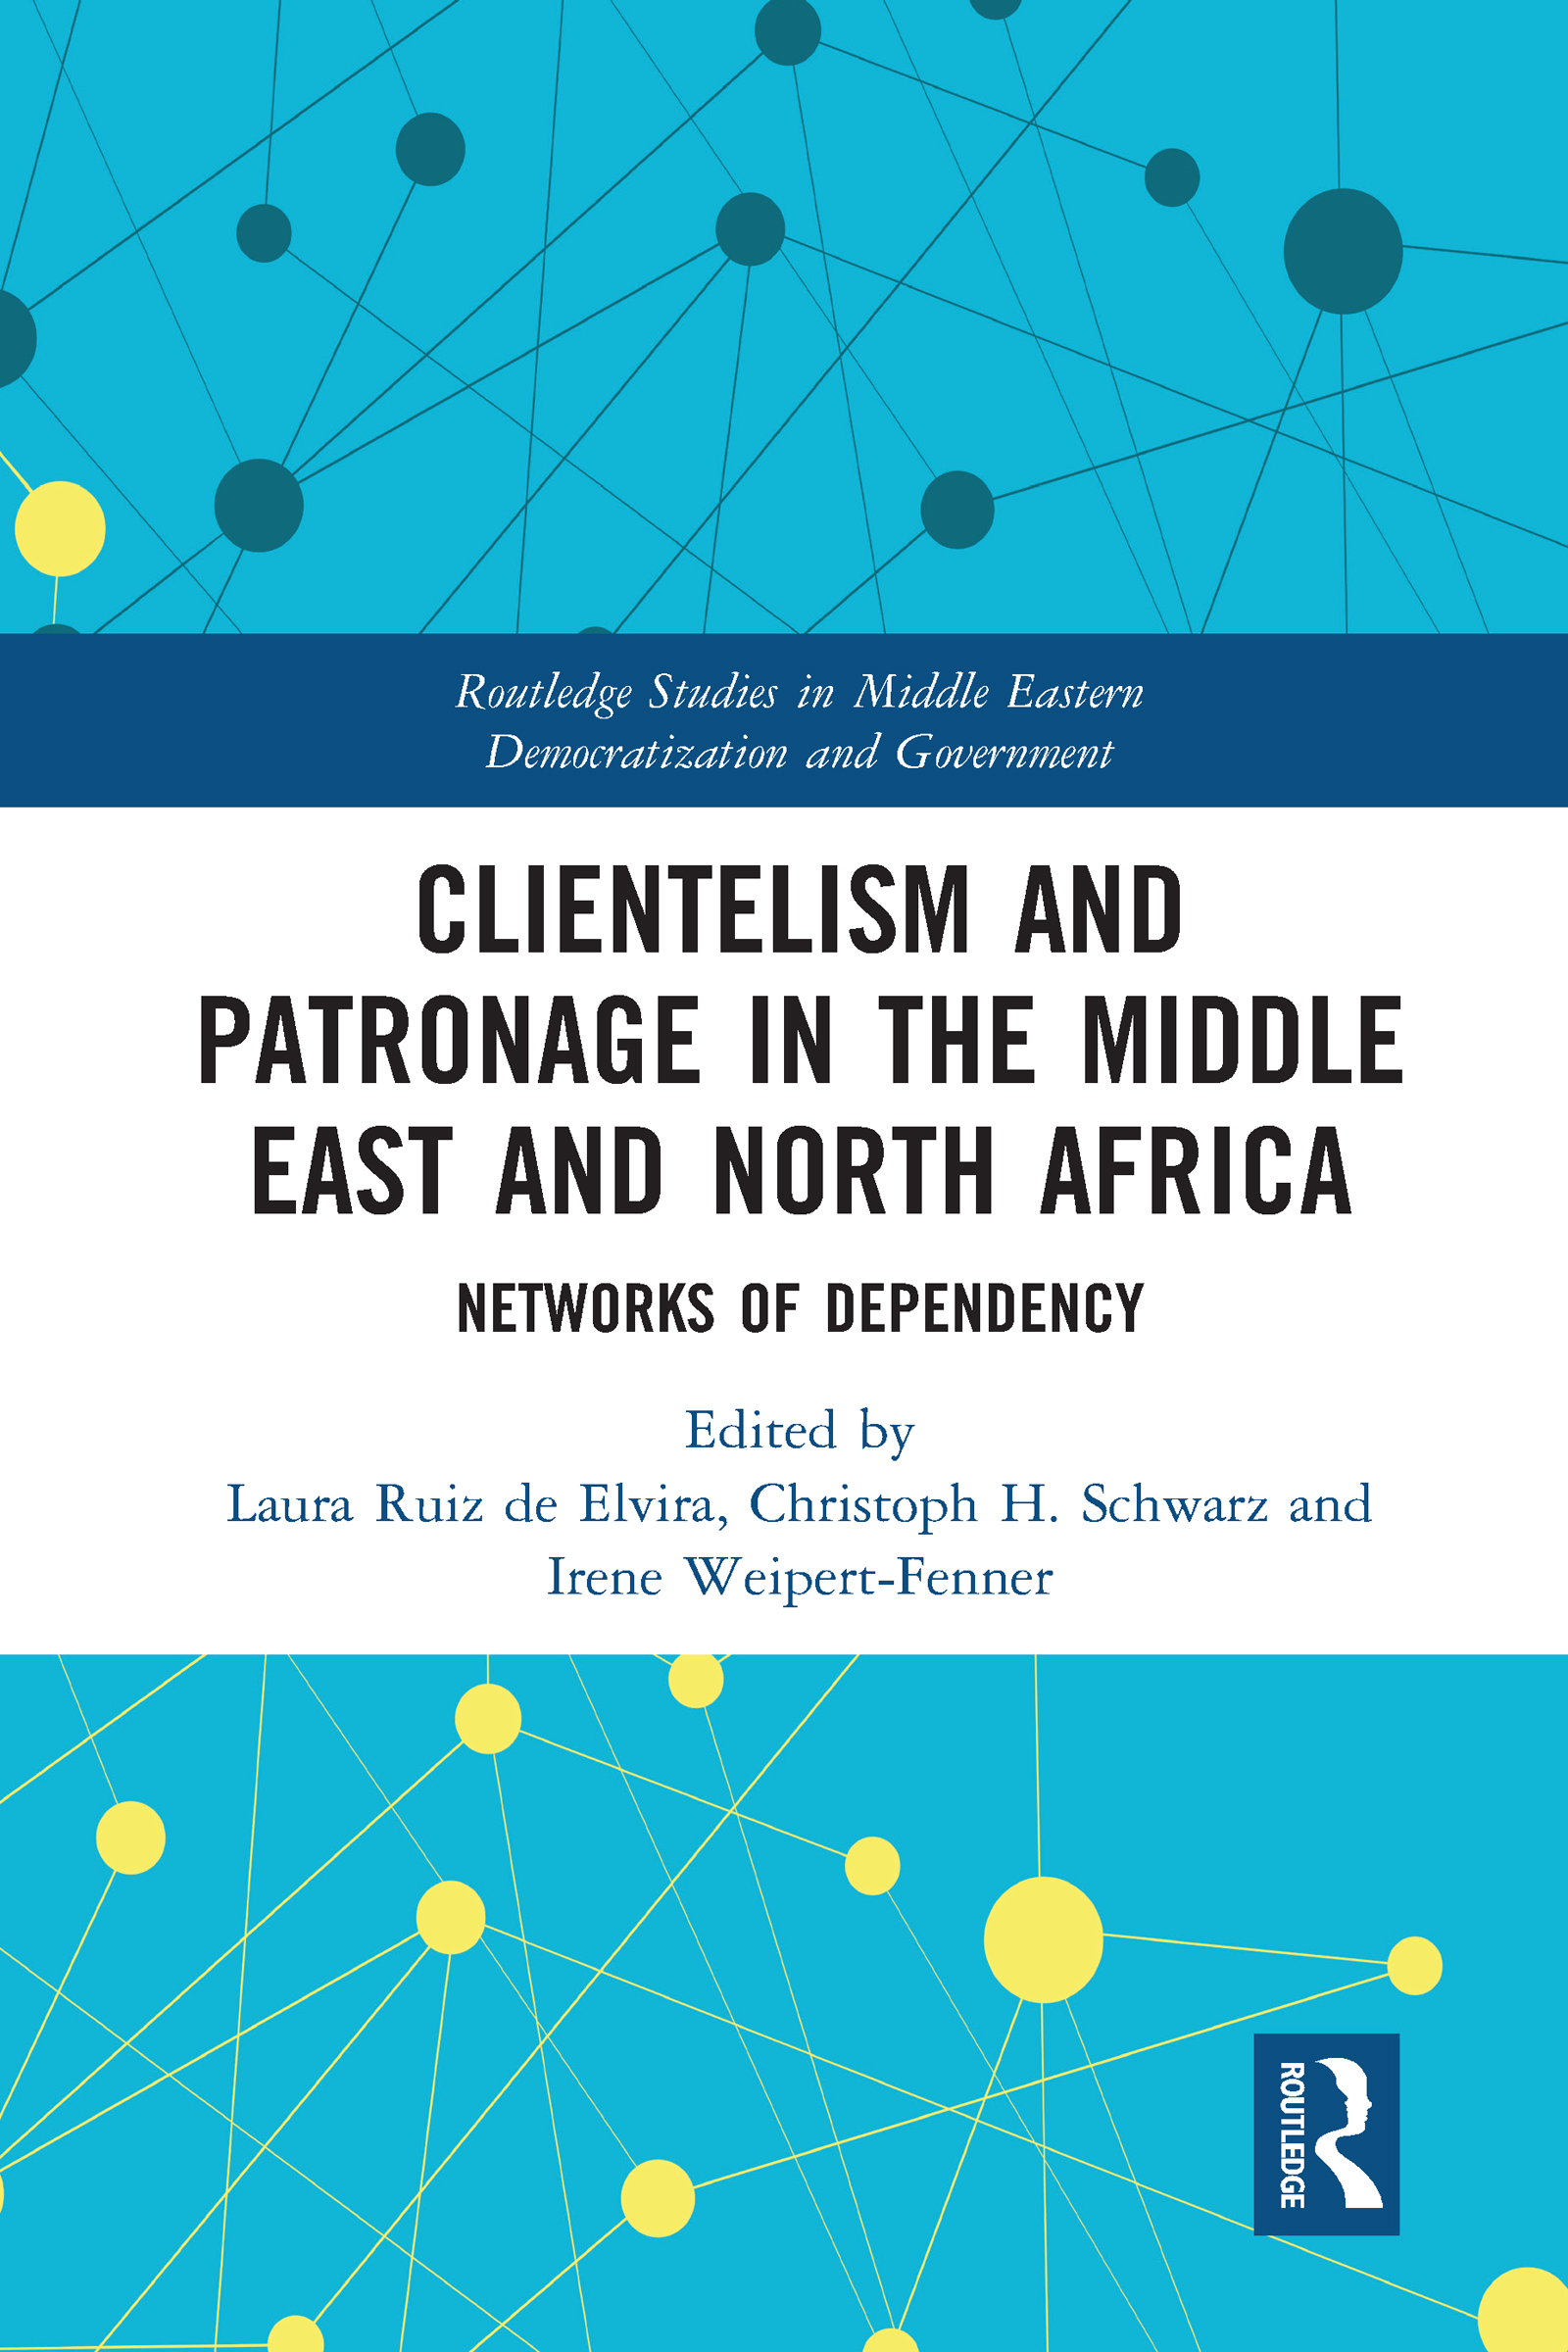 Clientelism and Patronage in the Middle East and North Africa